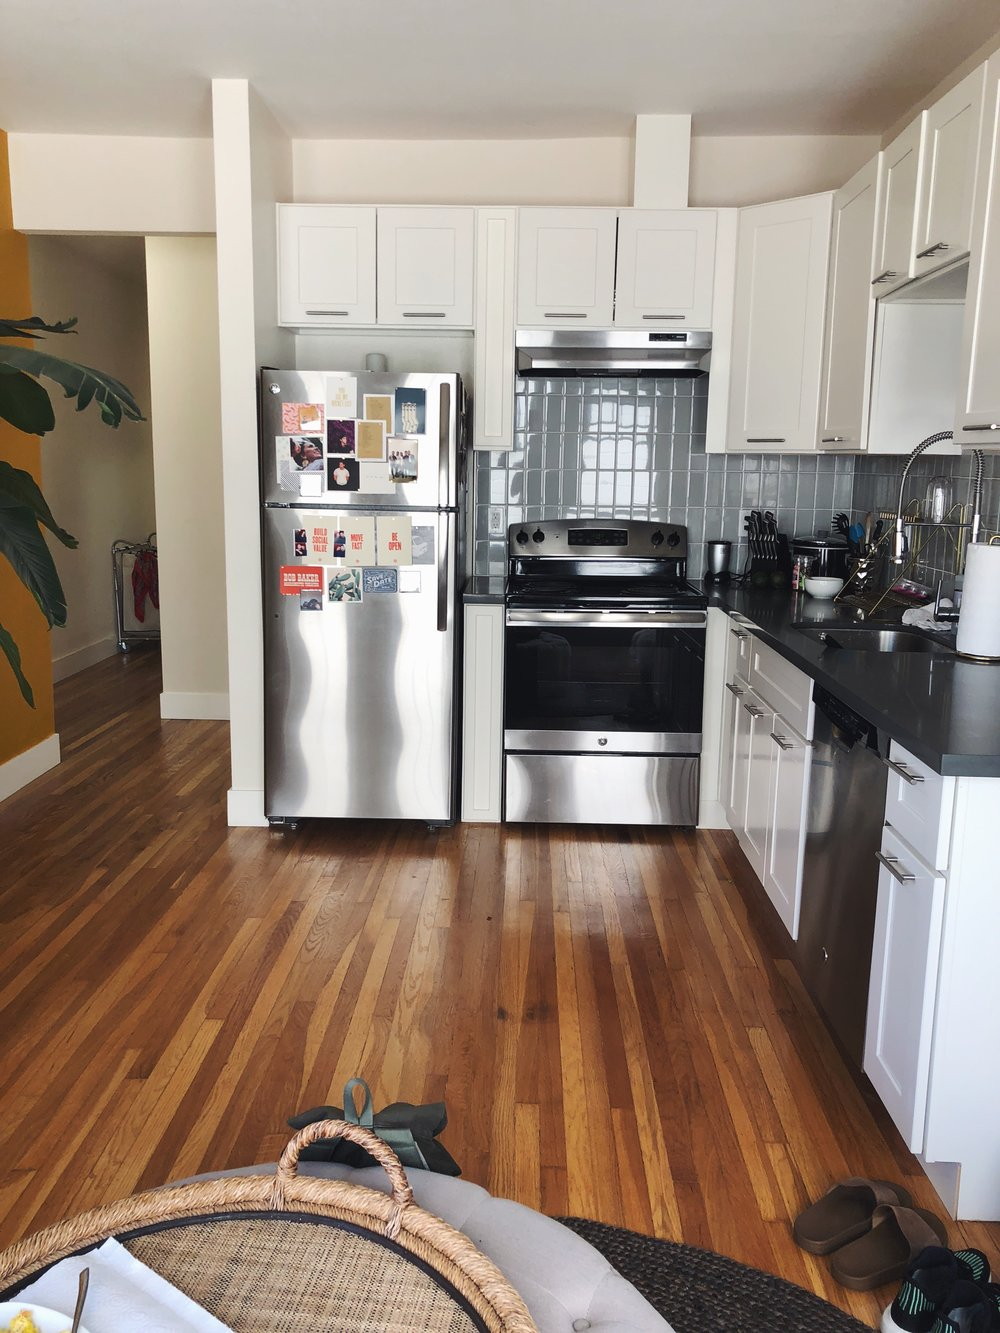 I love the open kitchen floor plan, makes the cozy space very livable